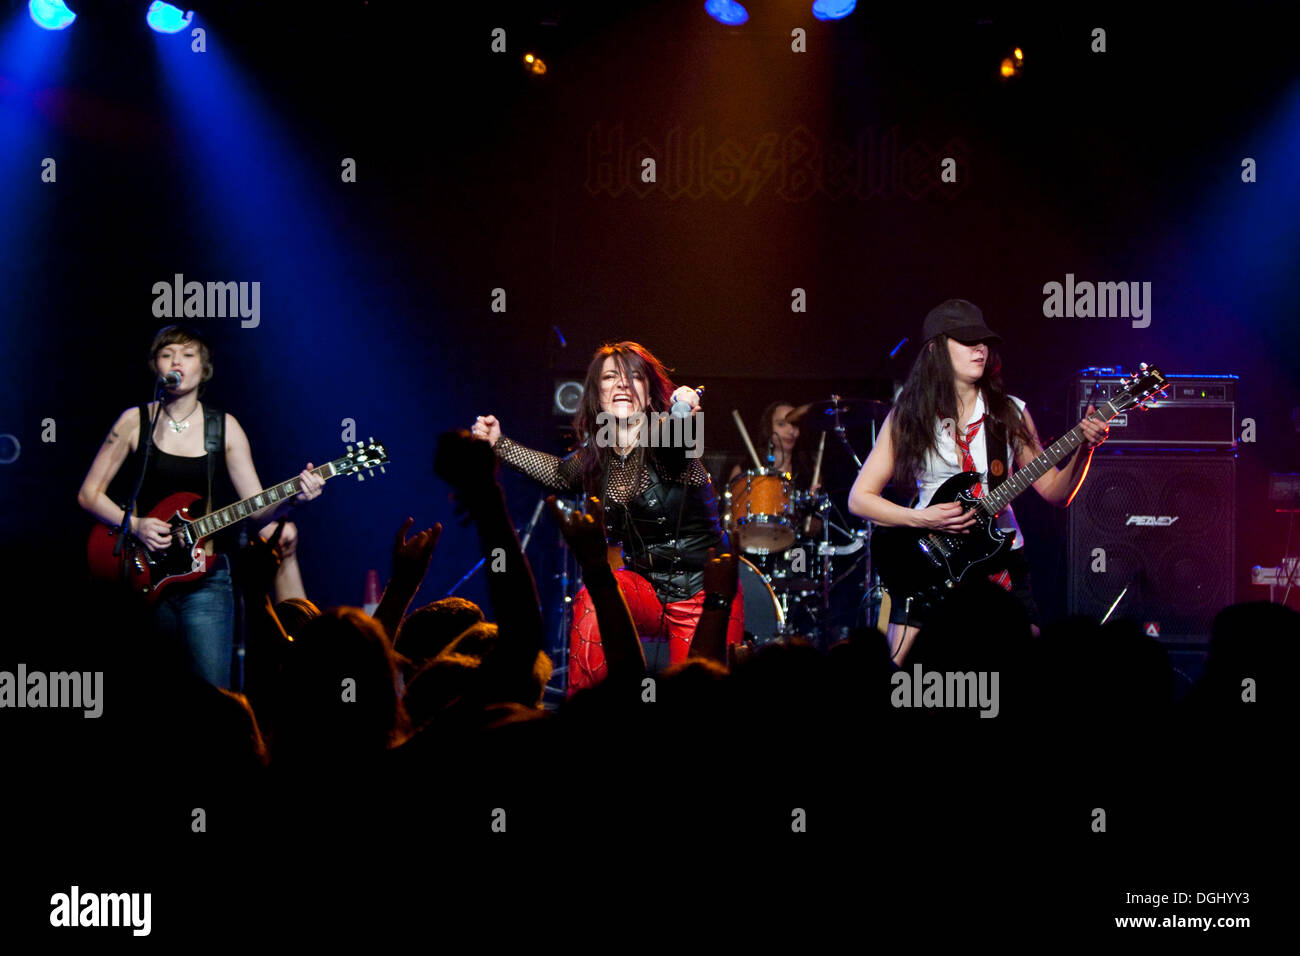 The German women AC/DC cover band Hells Belles live at the Schueuer ...